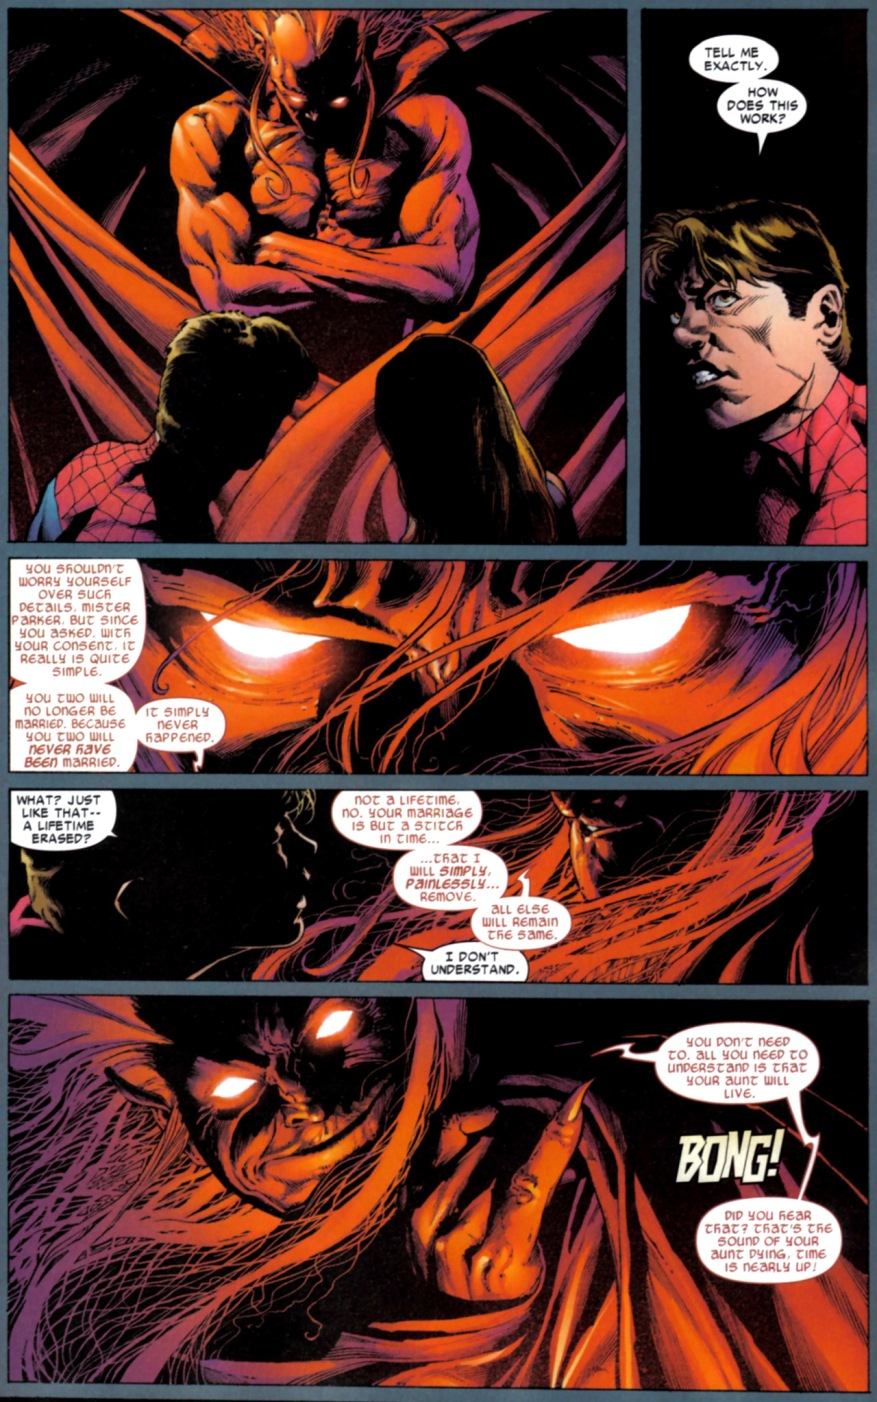 Mephisto Takes Away Spider-Man And Mary Jane's Love